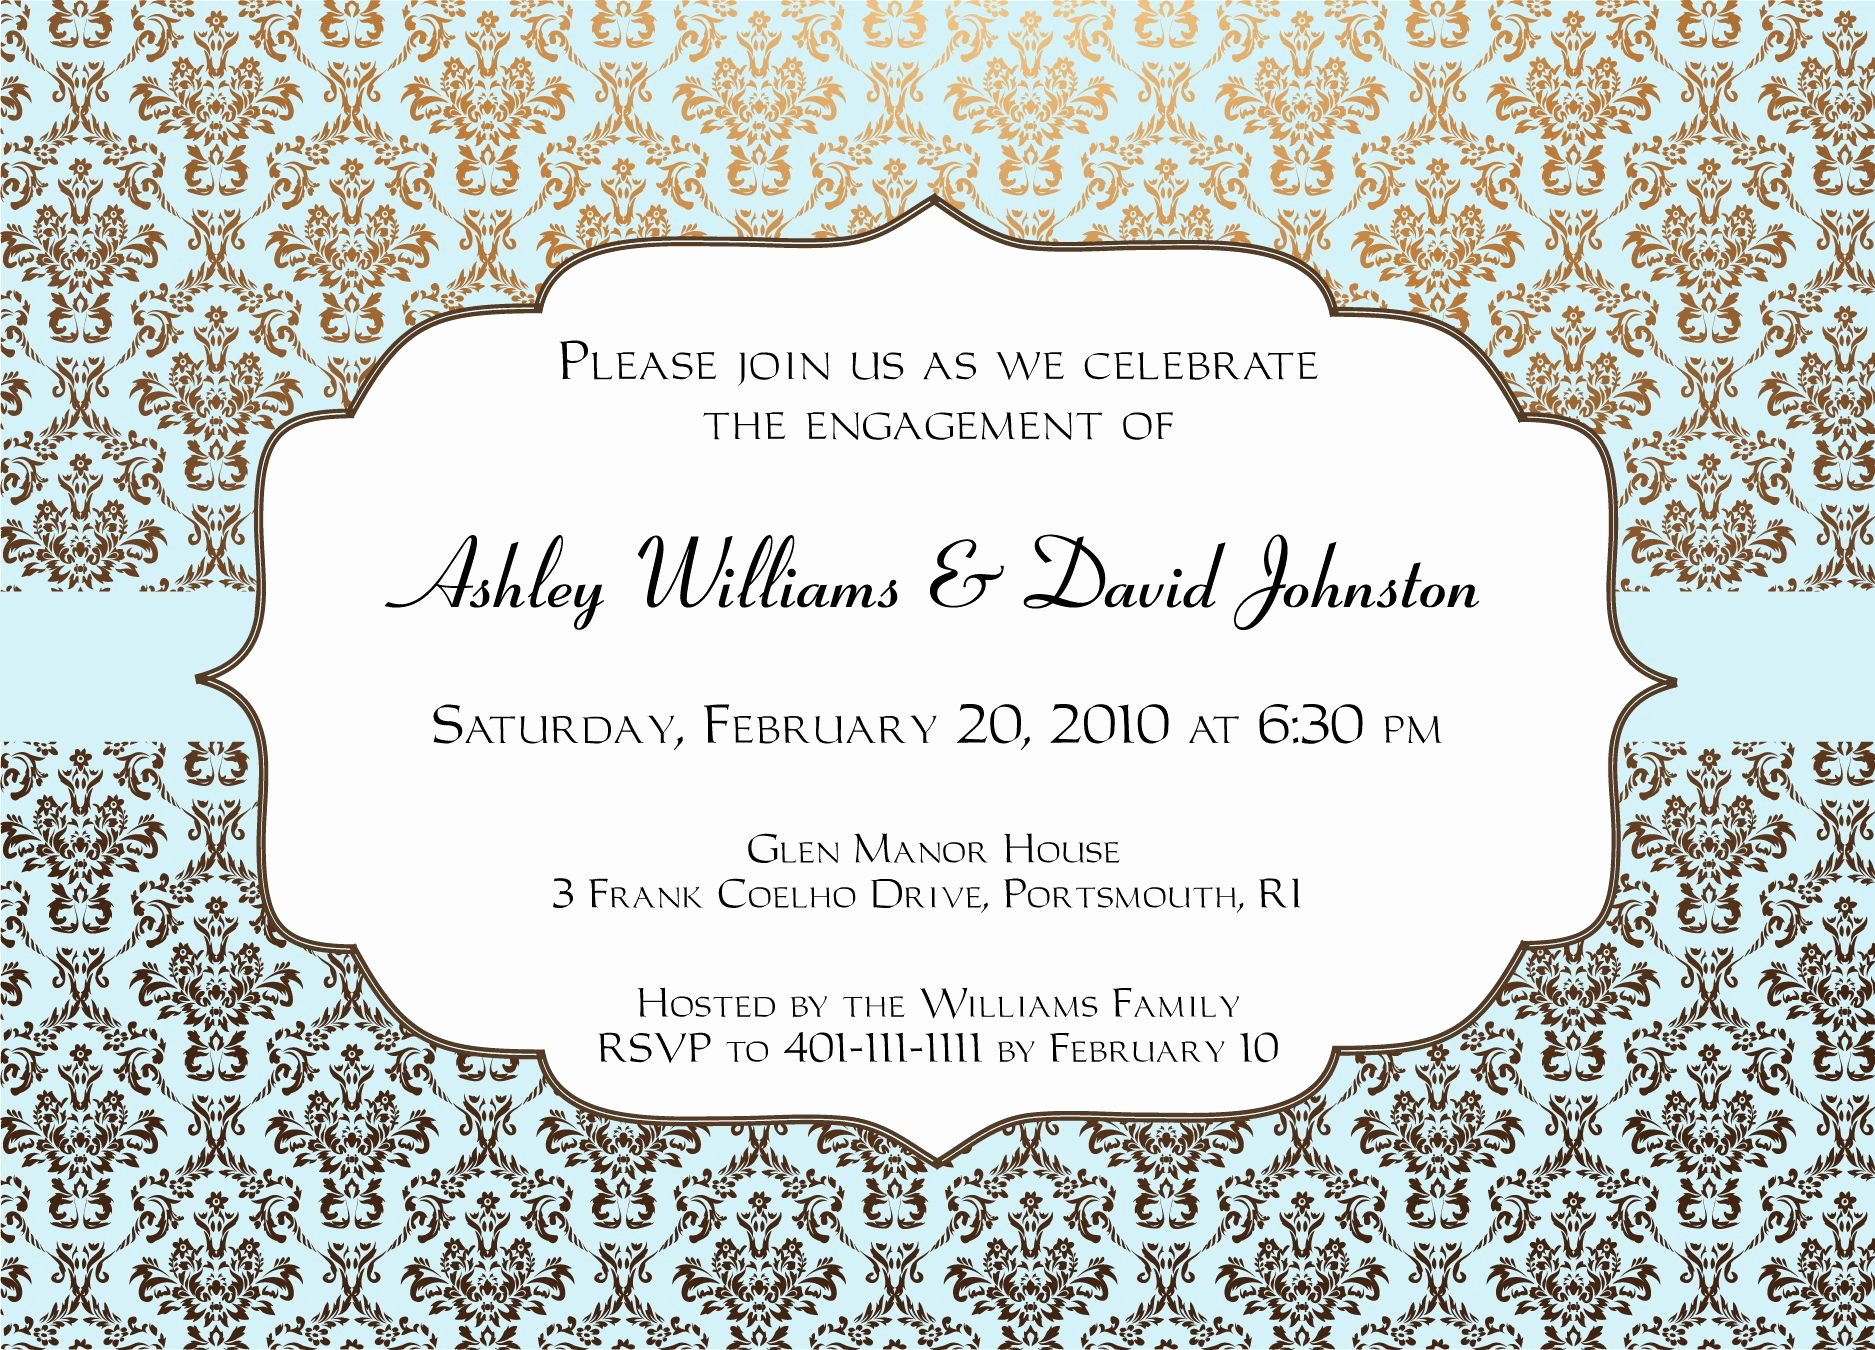 Free Engagement Party Invitation Template Inspirational Engagement Party Invitations Templates